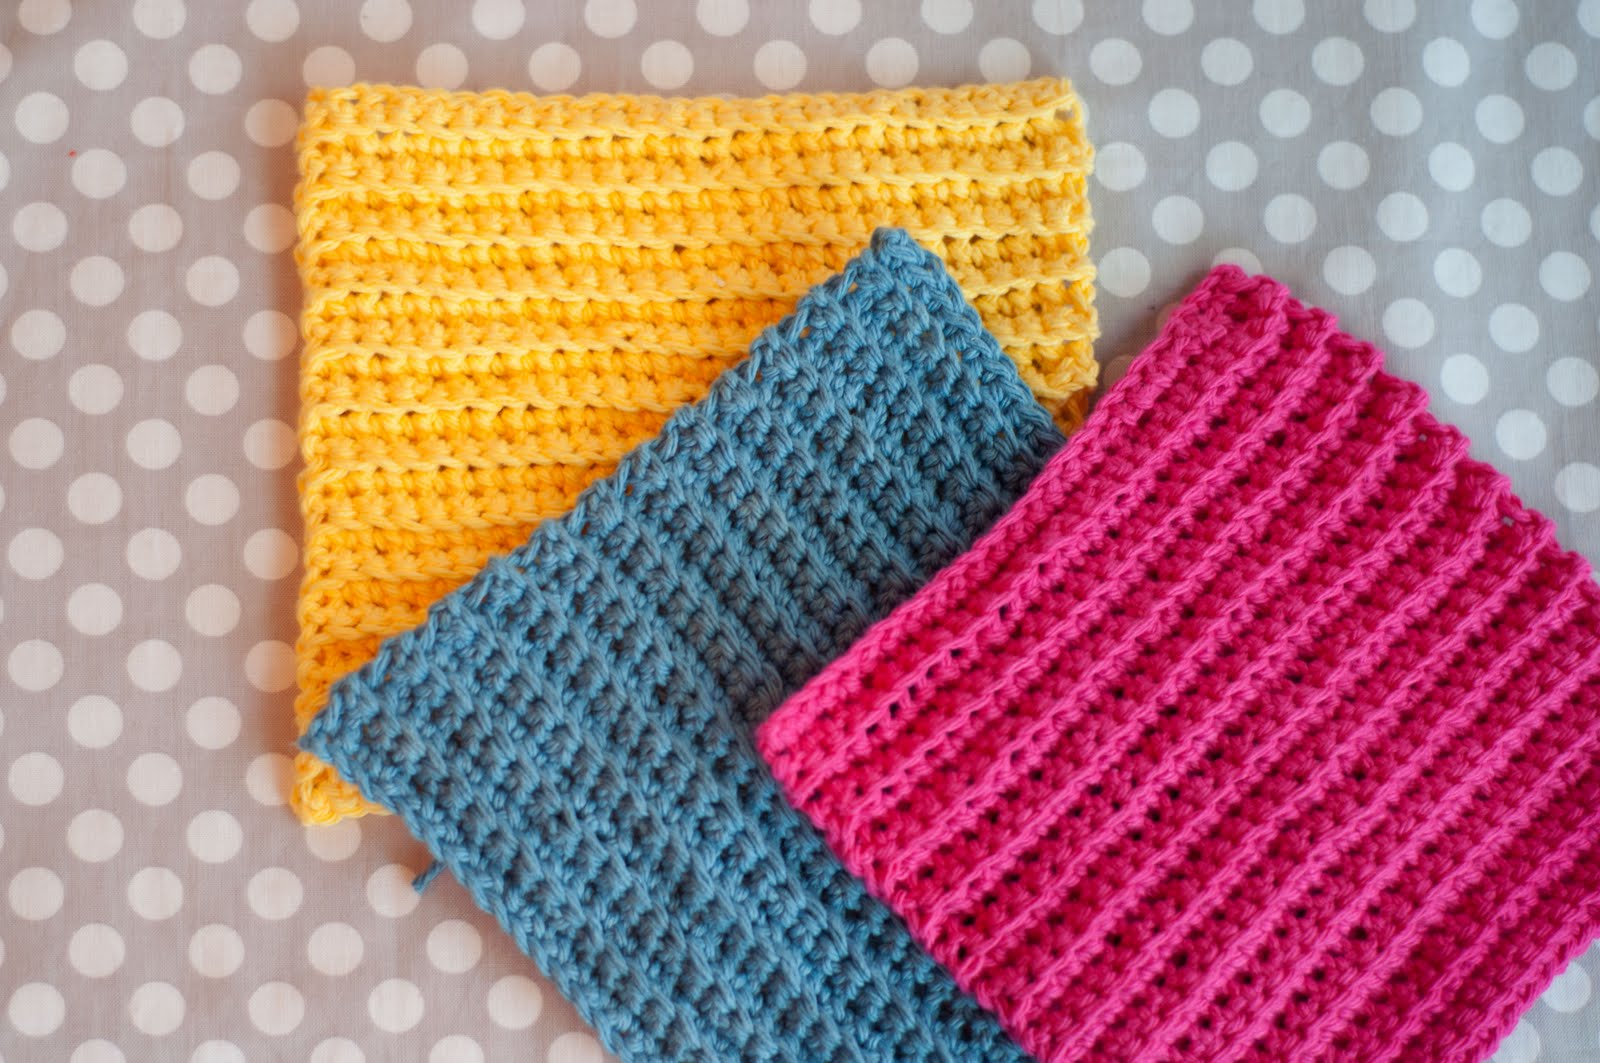 Crochet Beginner : Basic Crochet Stitches: Beginner Ruffled Scarf Pattern Tip Junkie